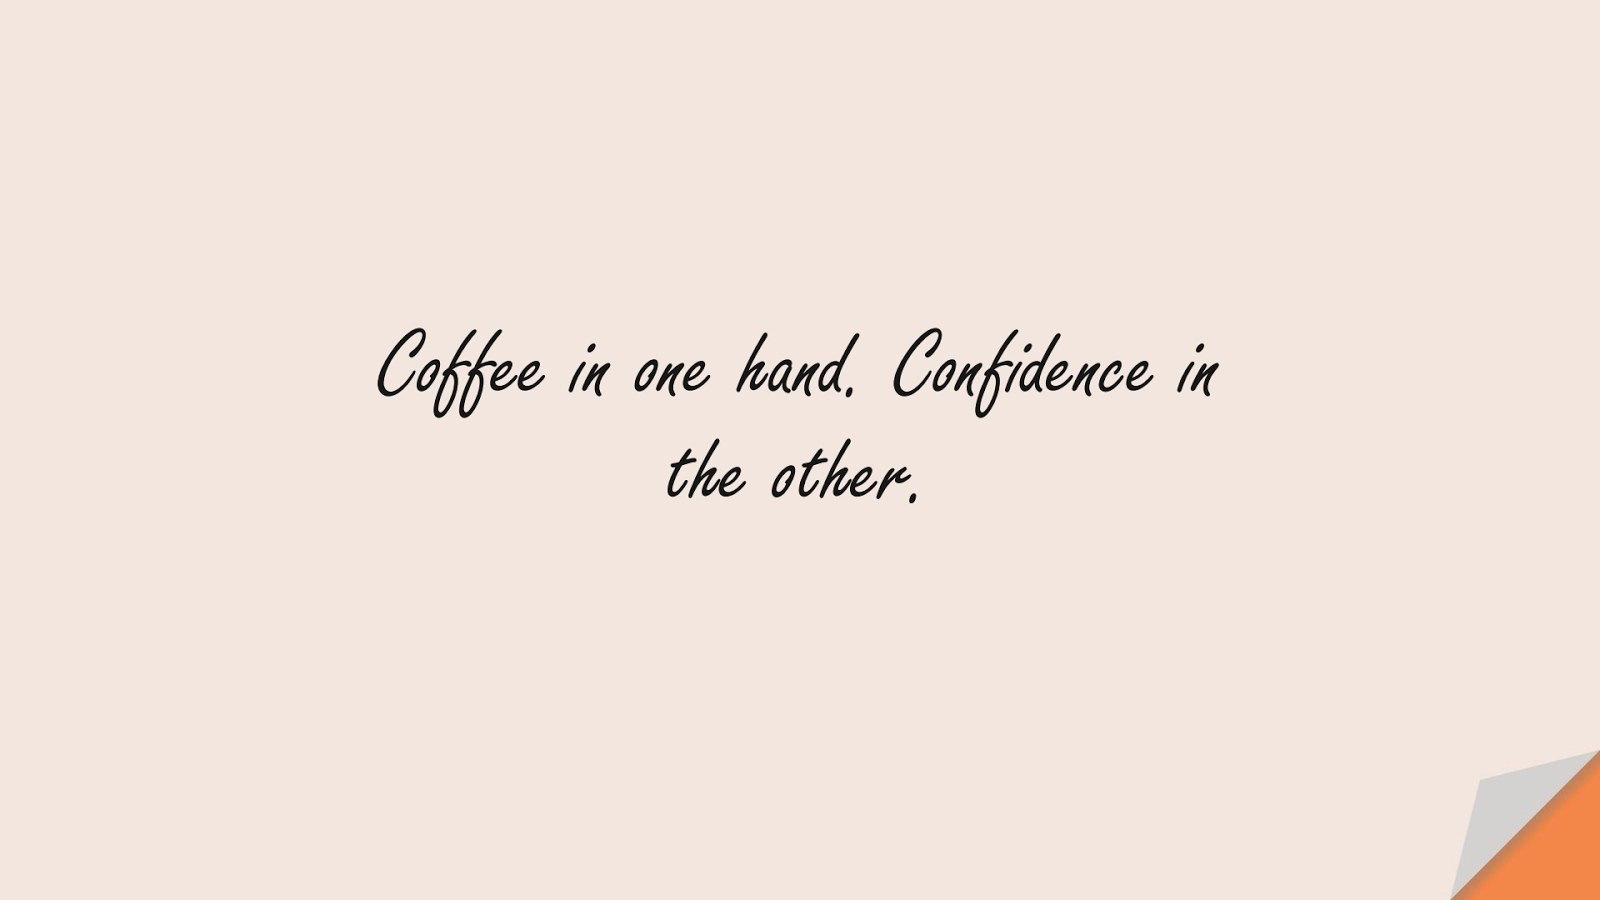 Coffee in one hand. Confidence in the other.FALSE